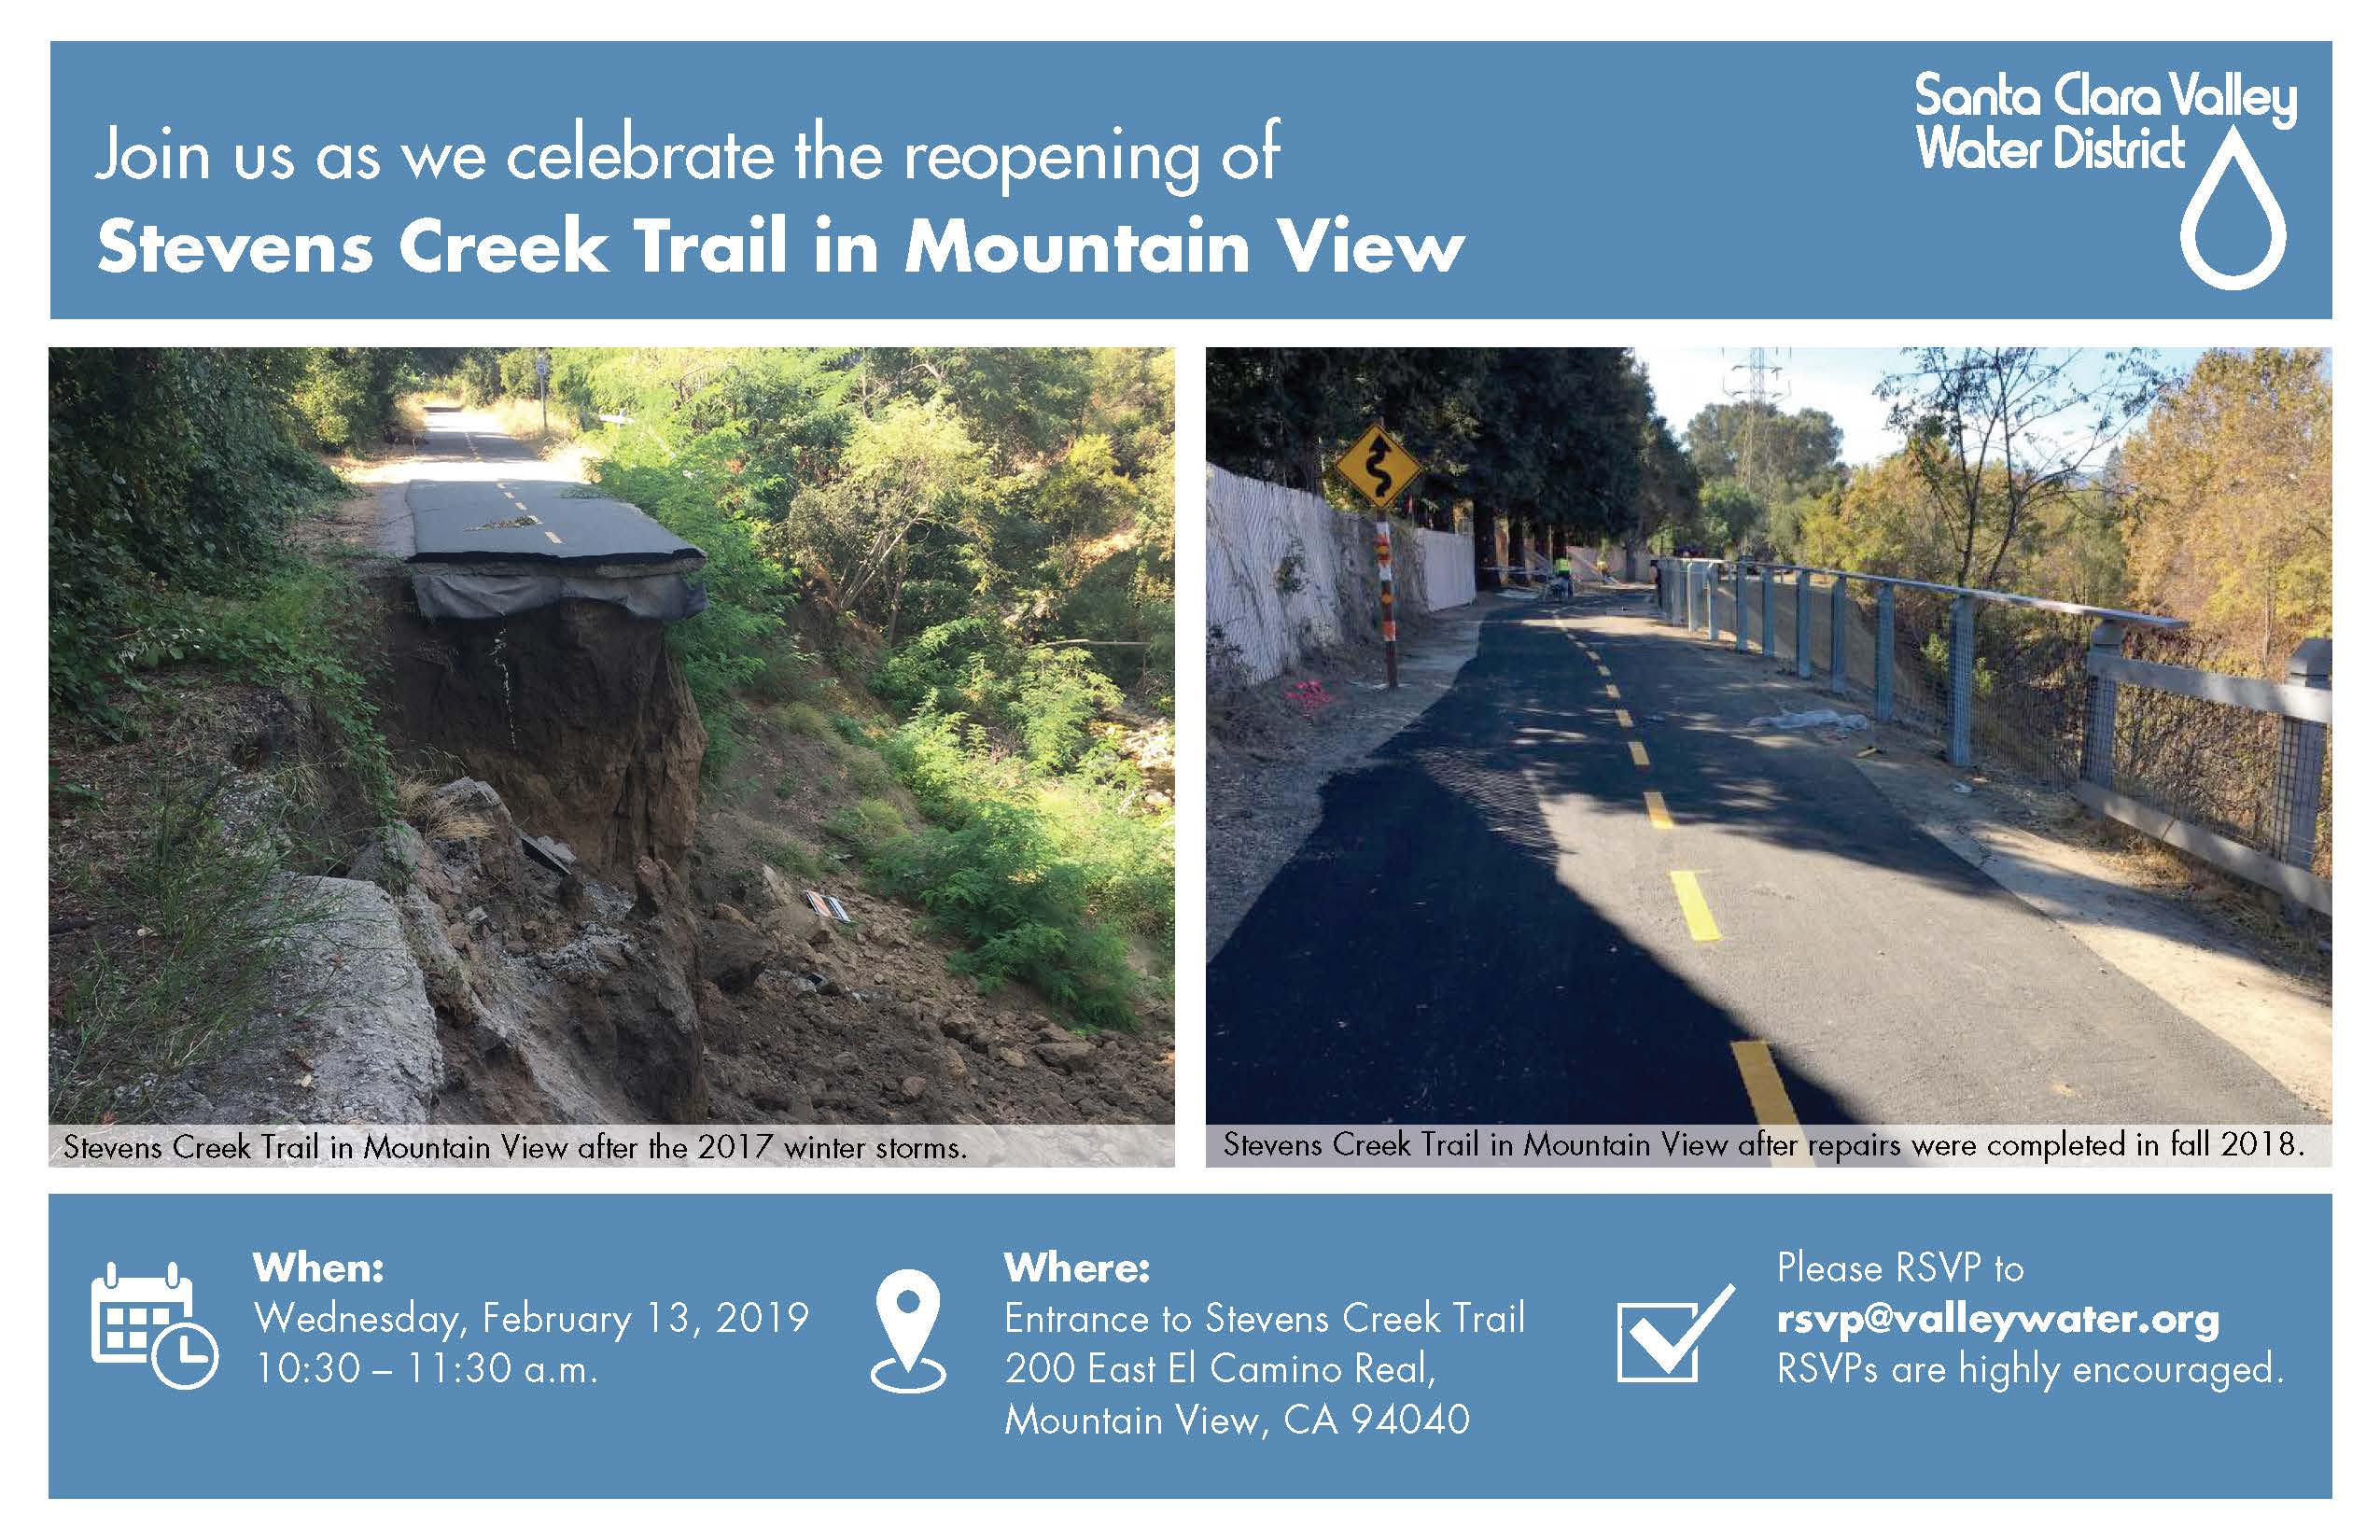 Reopening of the Stevens Creek Trail in Mountain View